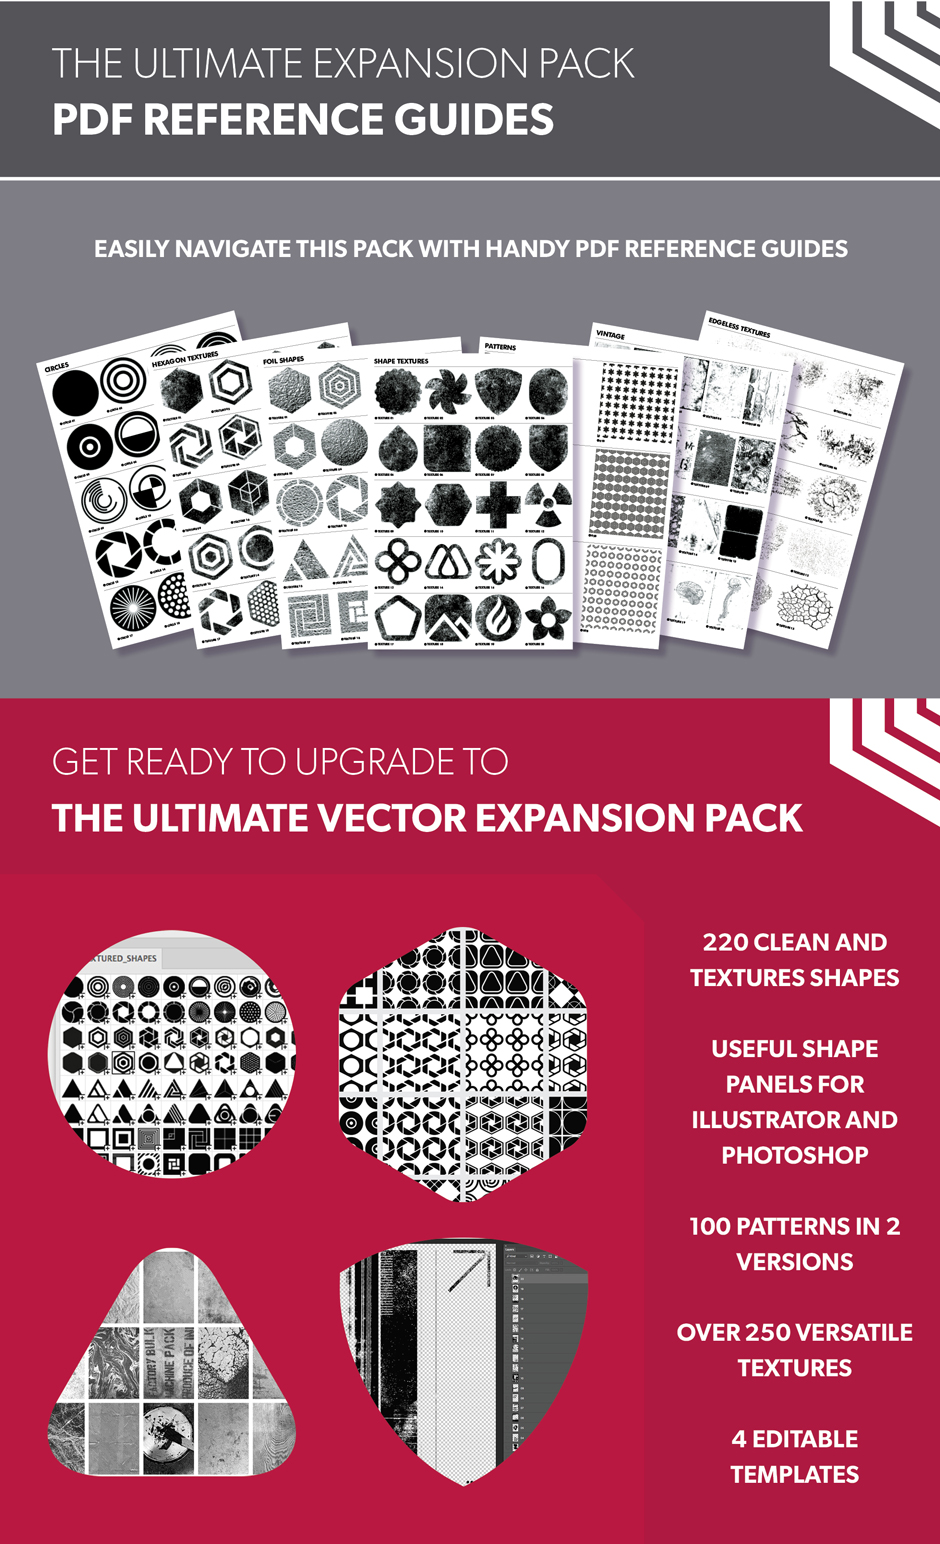 The Ultimate Vector Expansion Pack